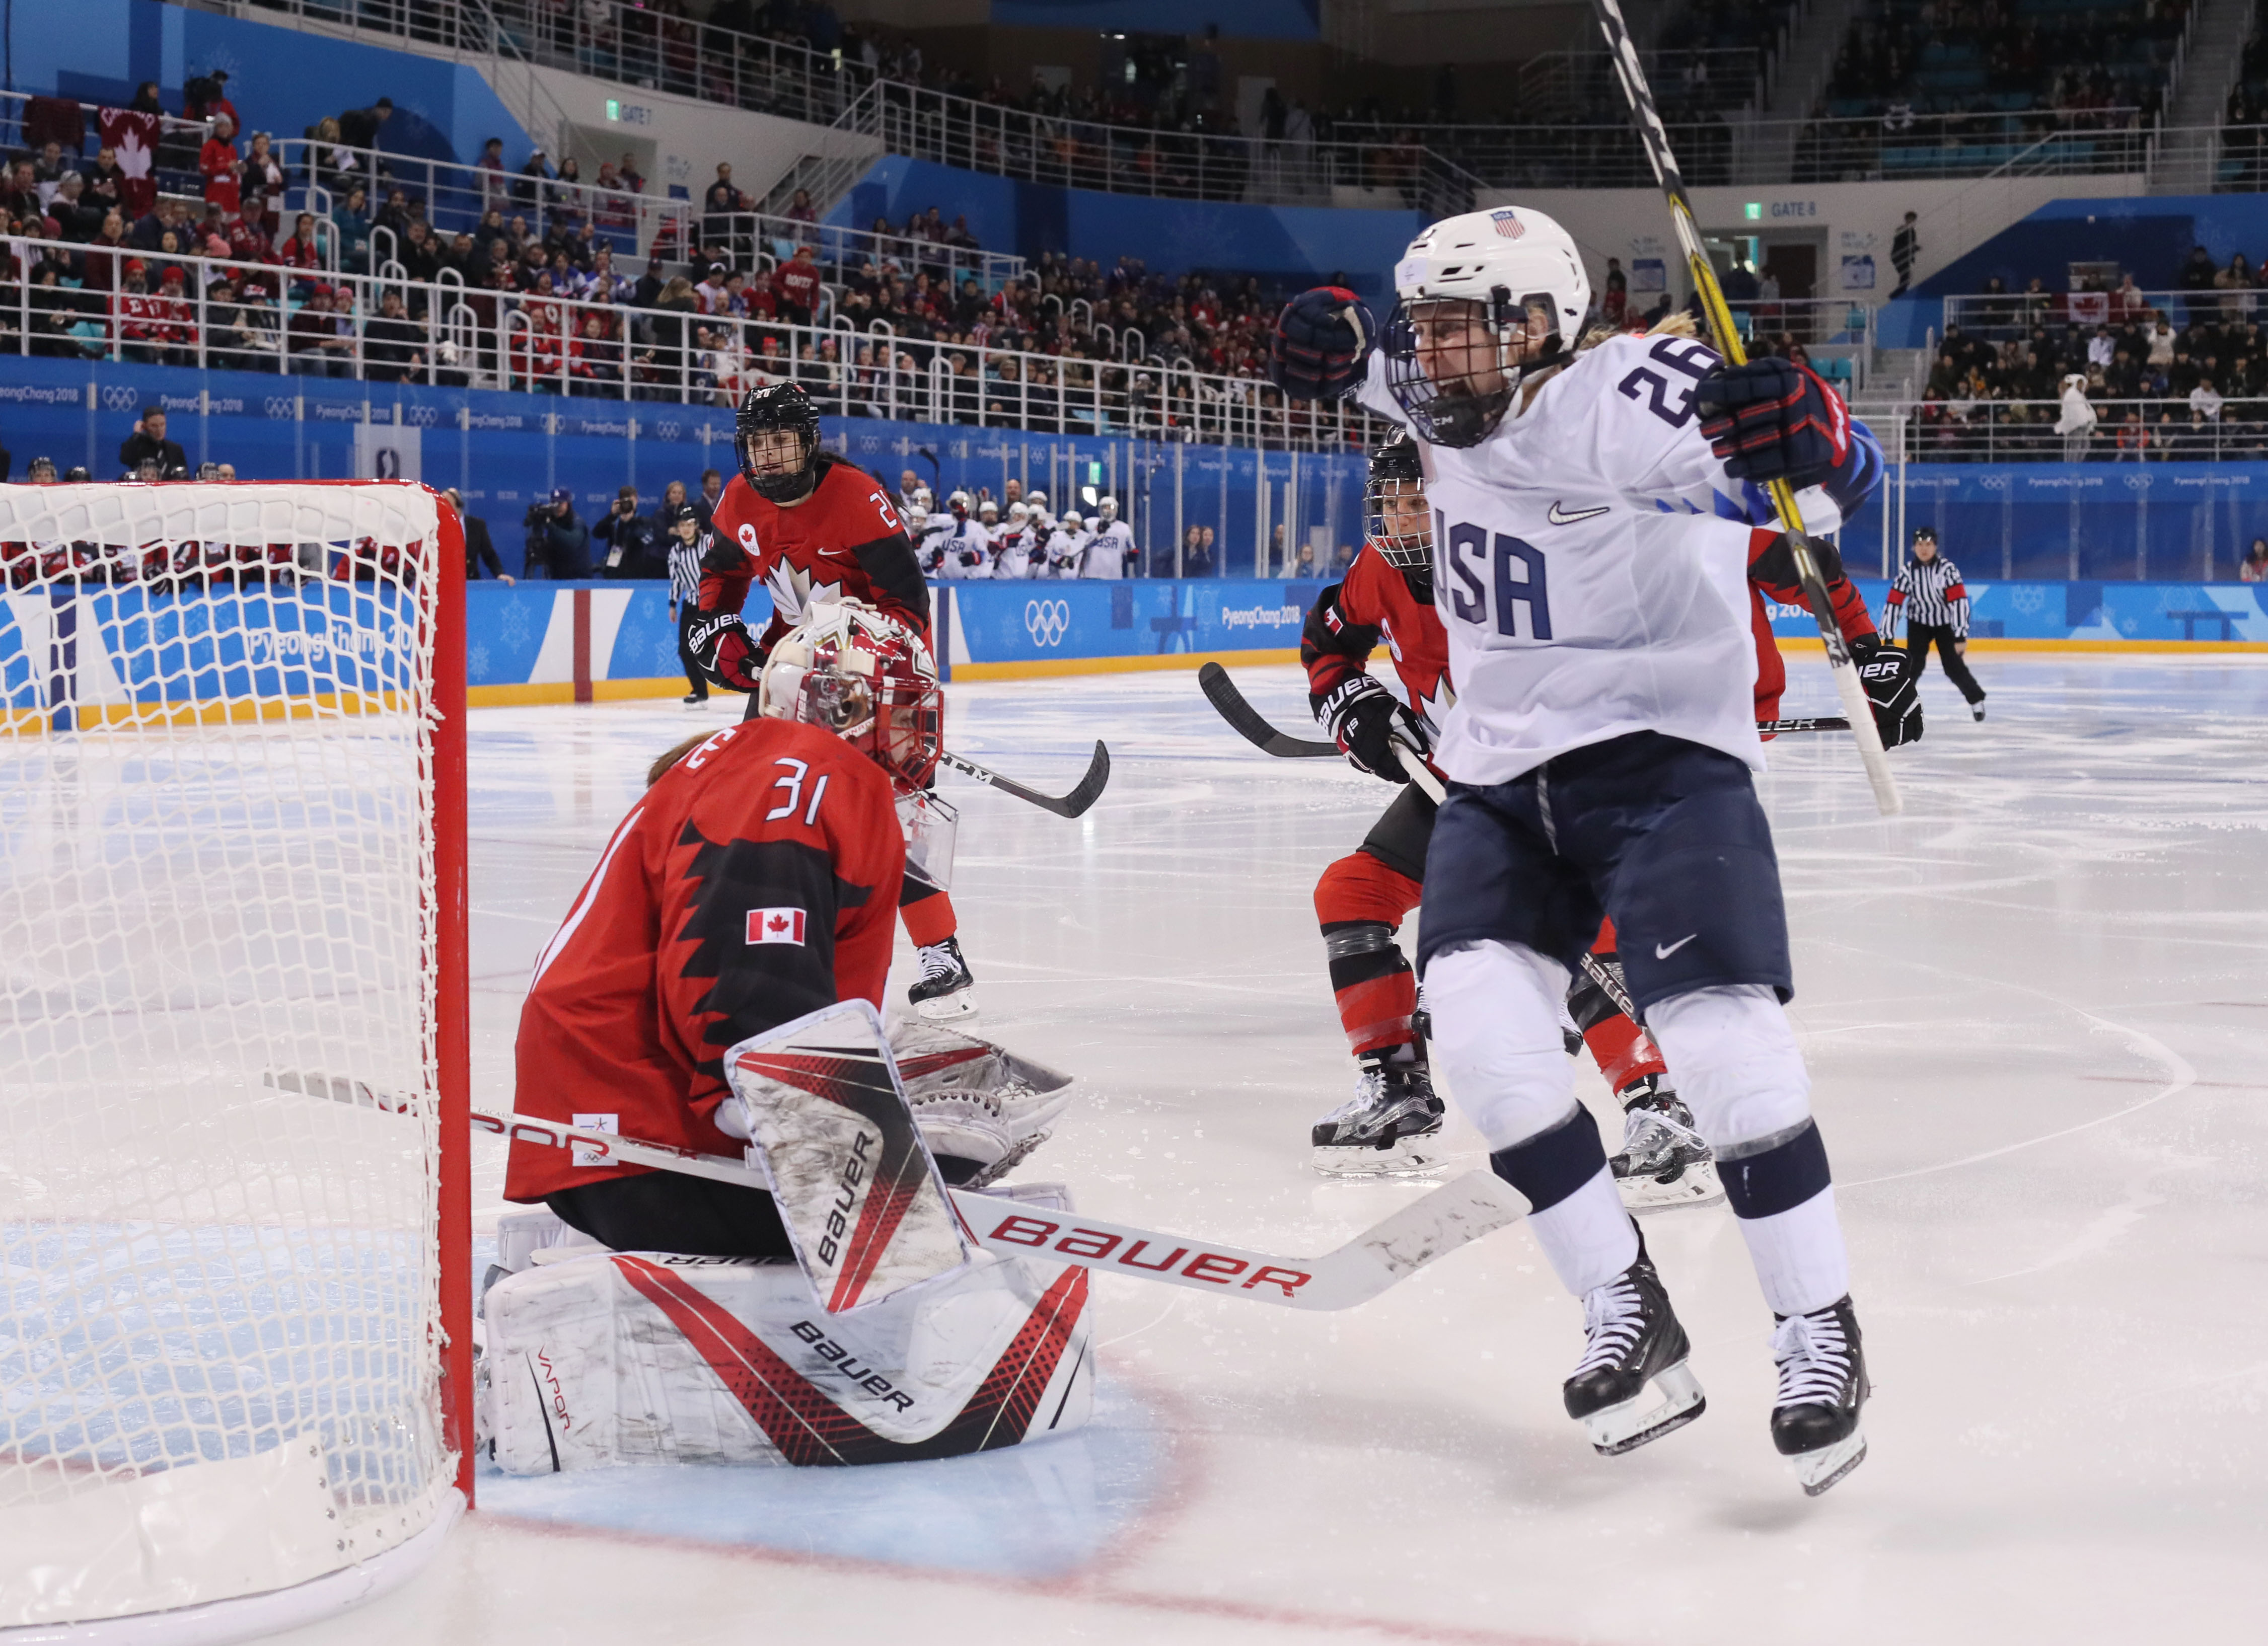 USA vs. Canada World Cup exhibition games: How to watch on TV, live stream